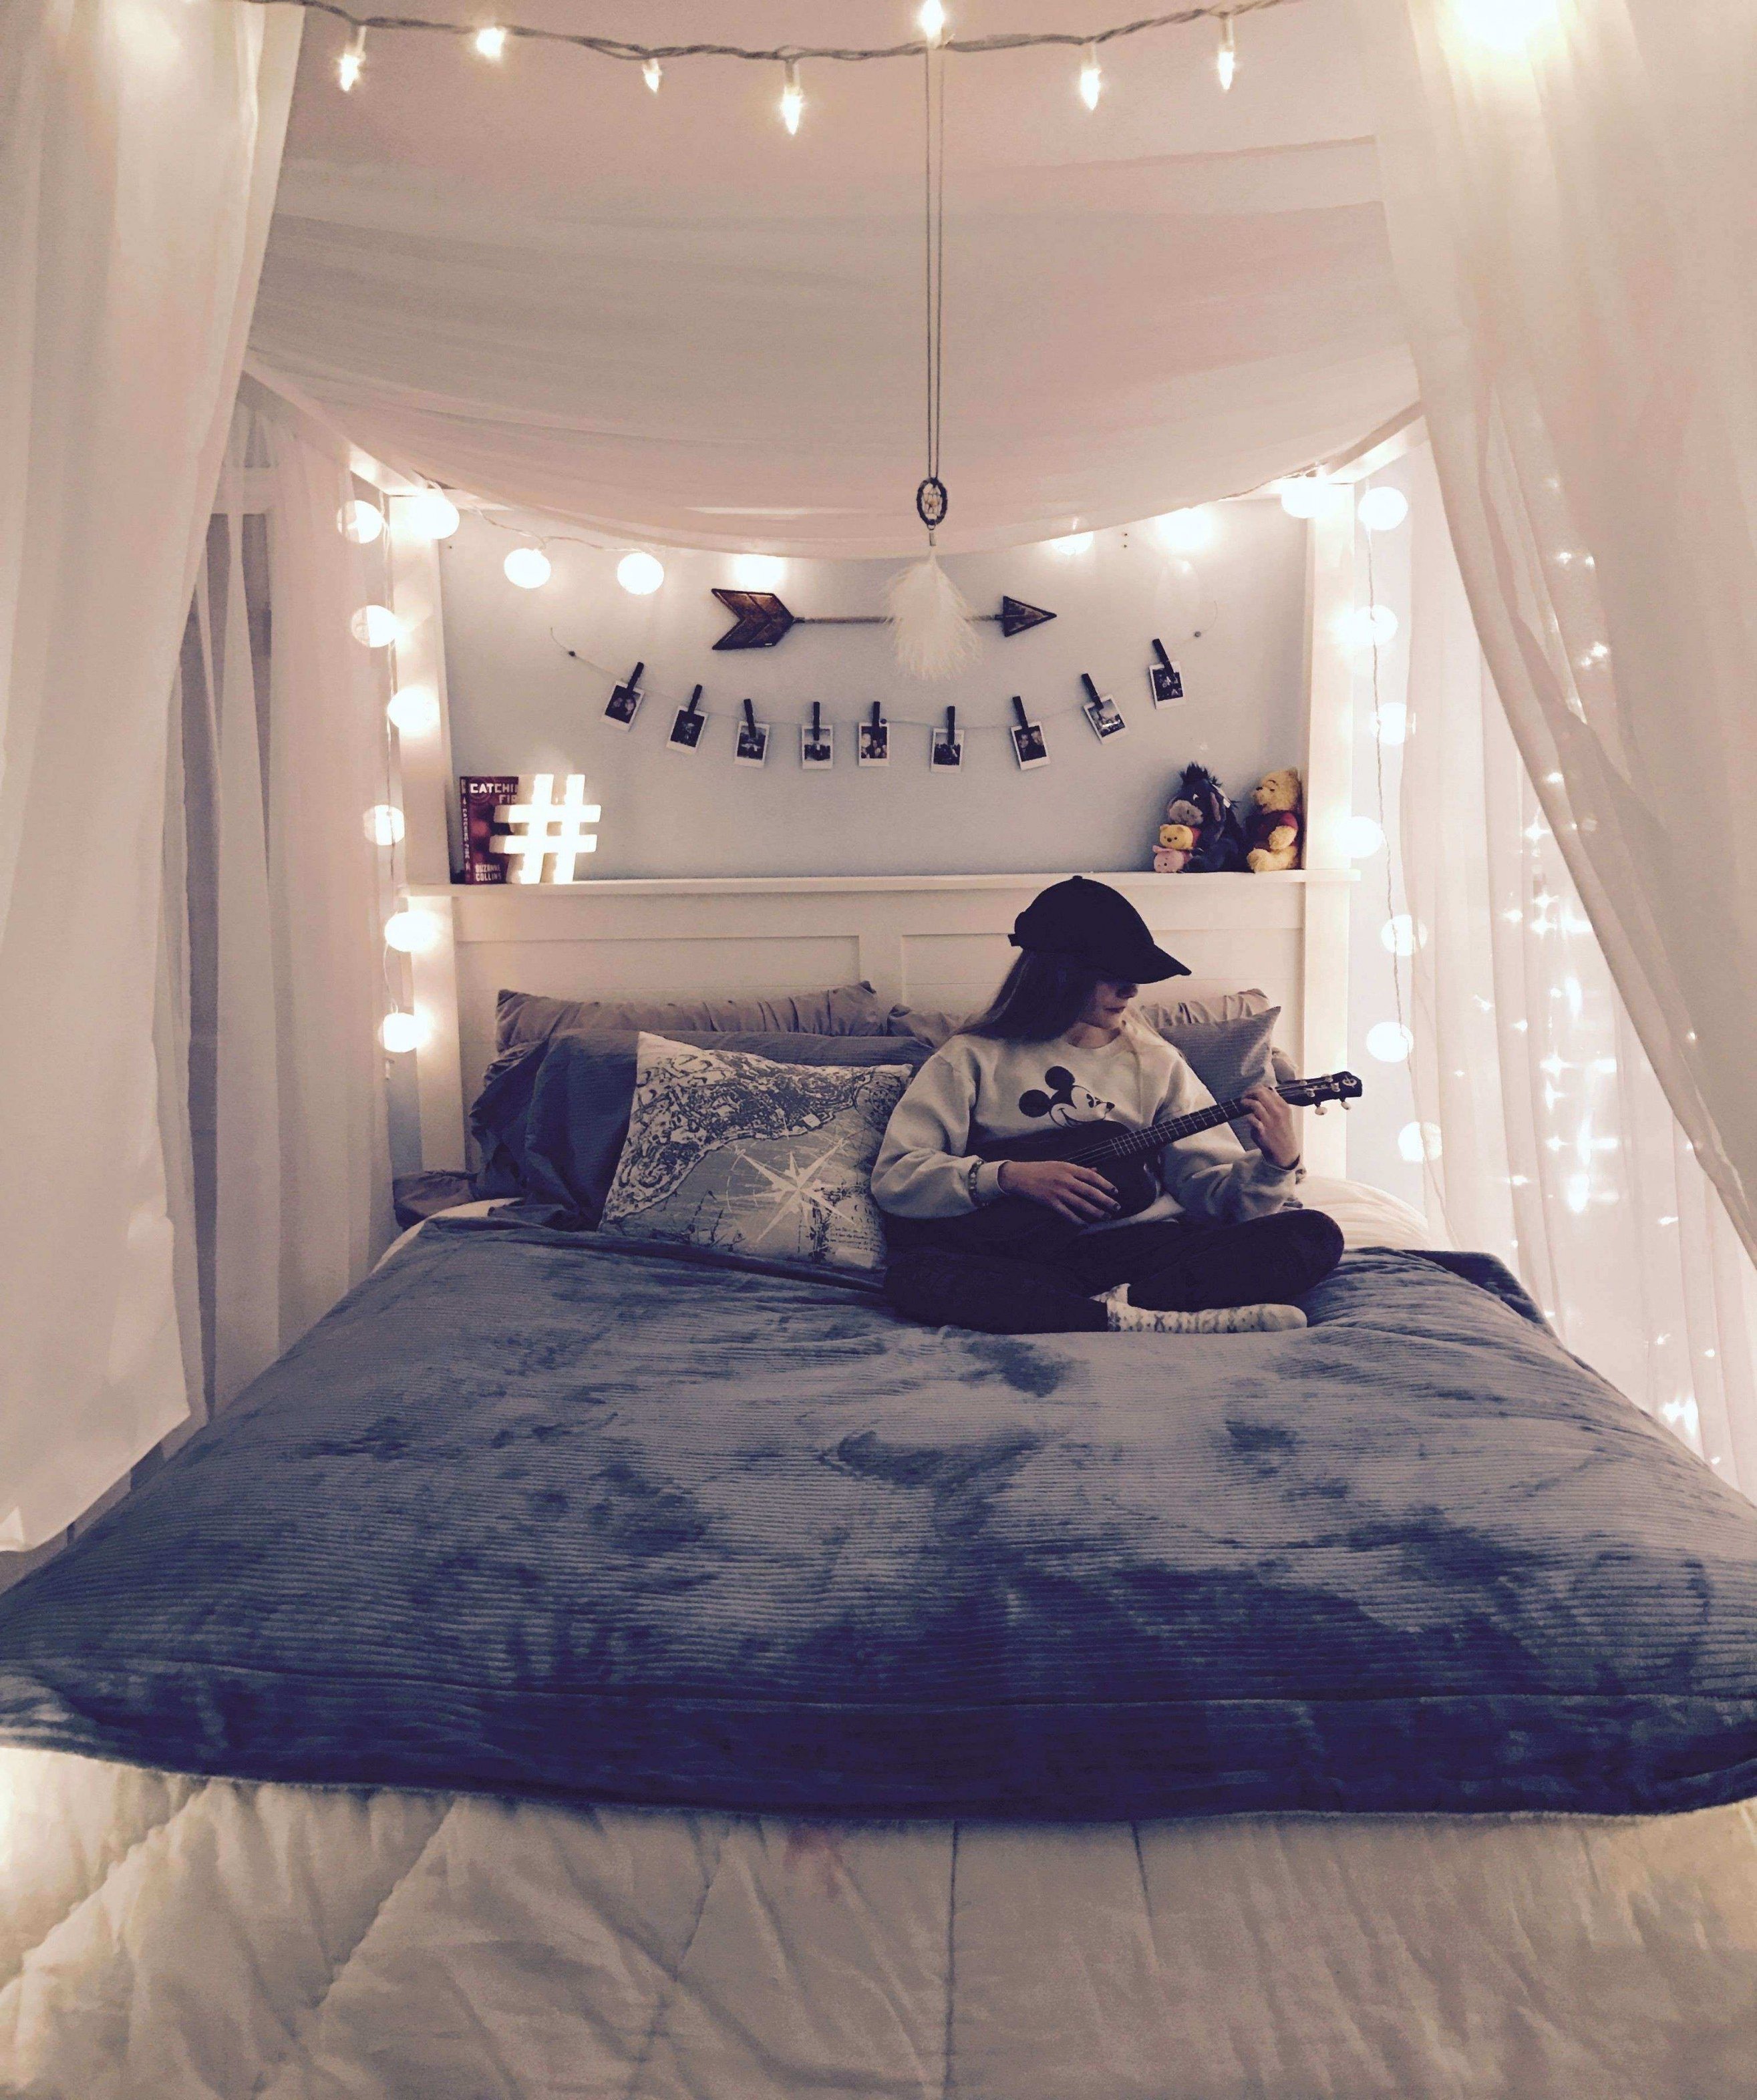 Wall Art Ideas for Bedroom Fresh Tween Bedroom Ideas Free Download Image Best Girls Room Wall